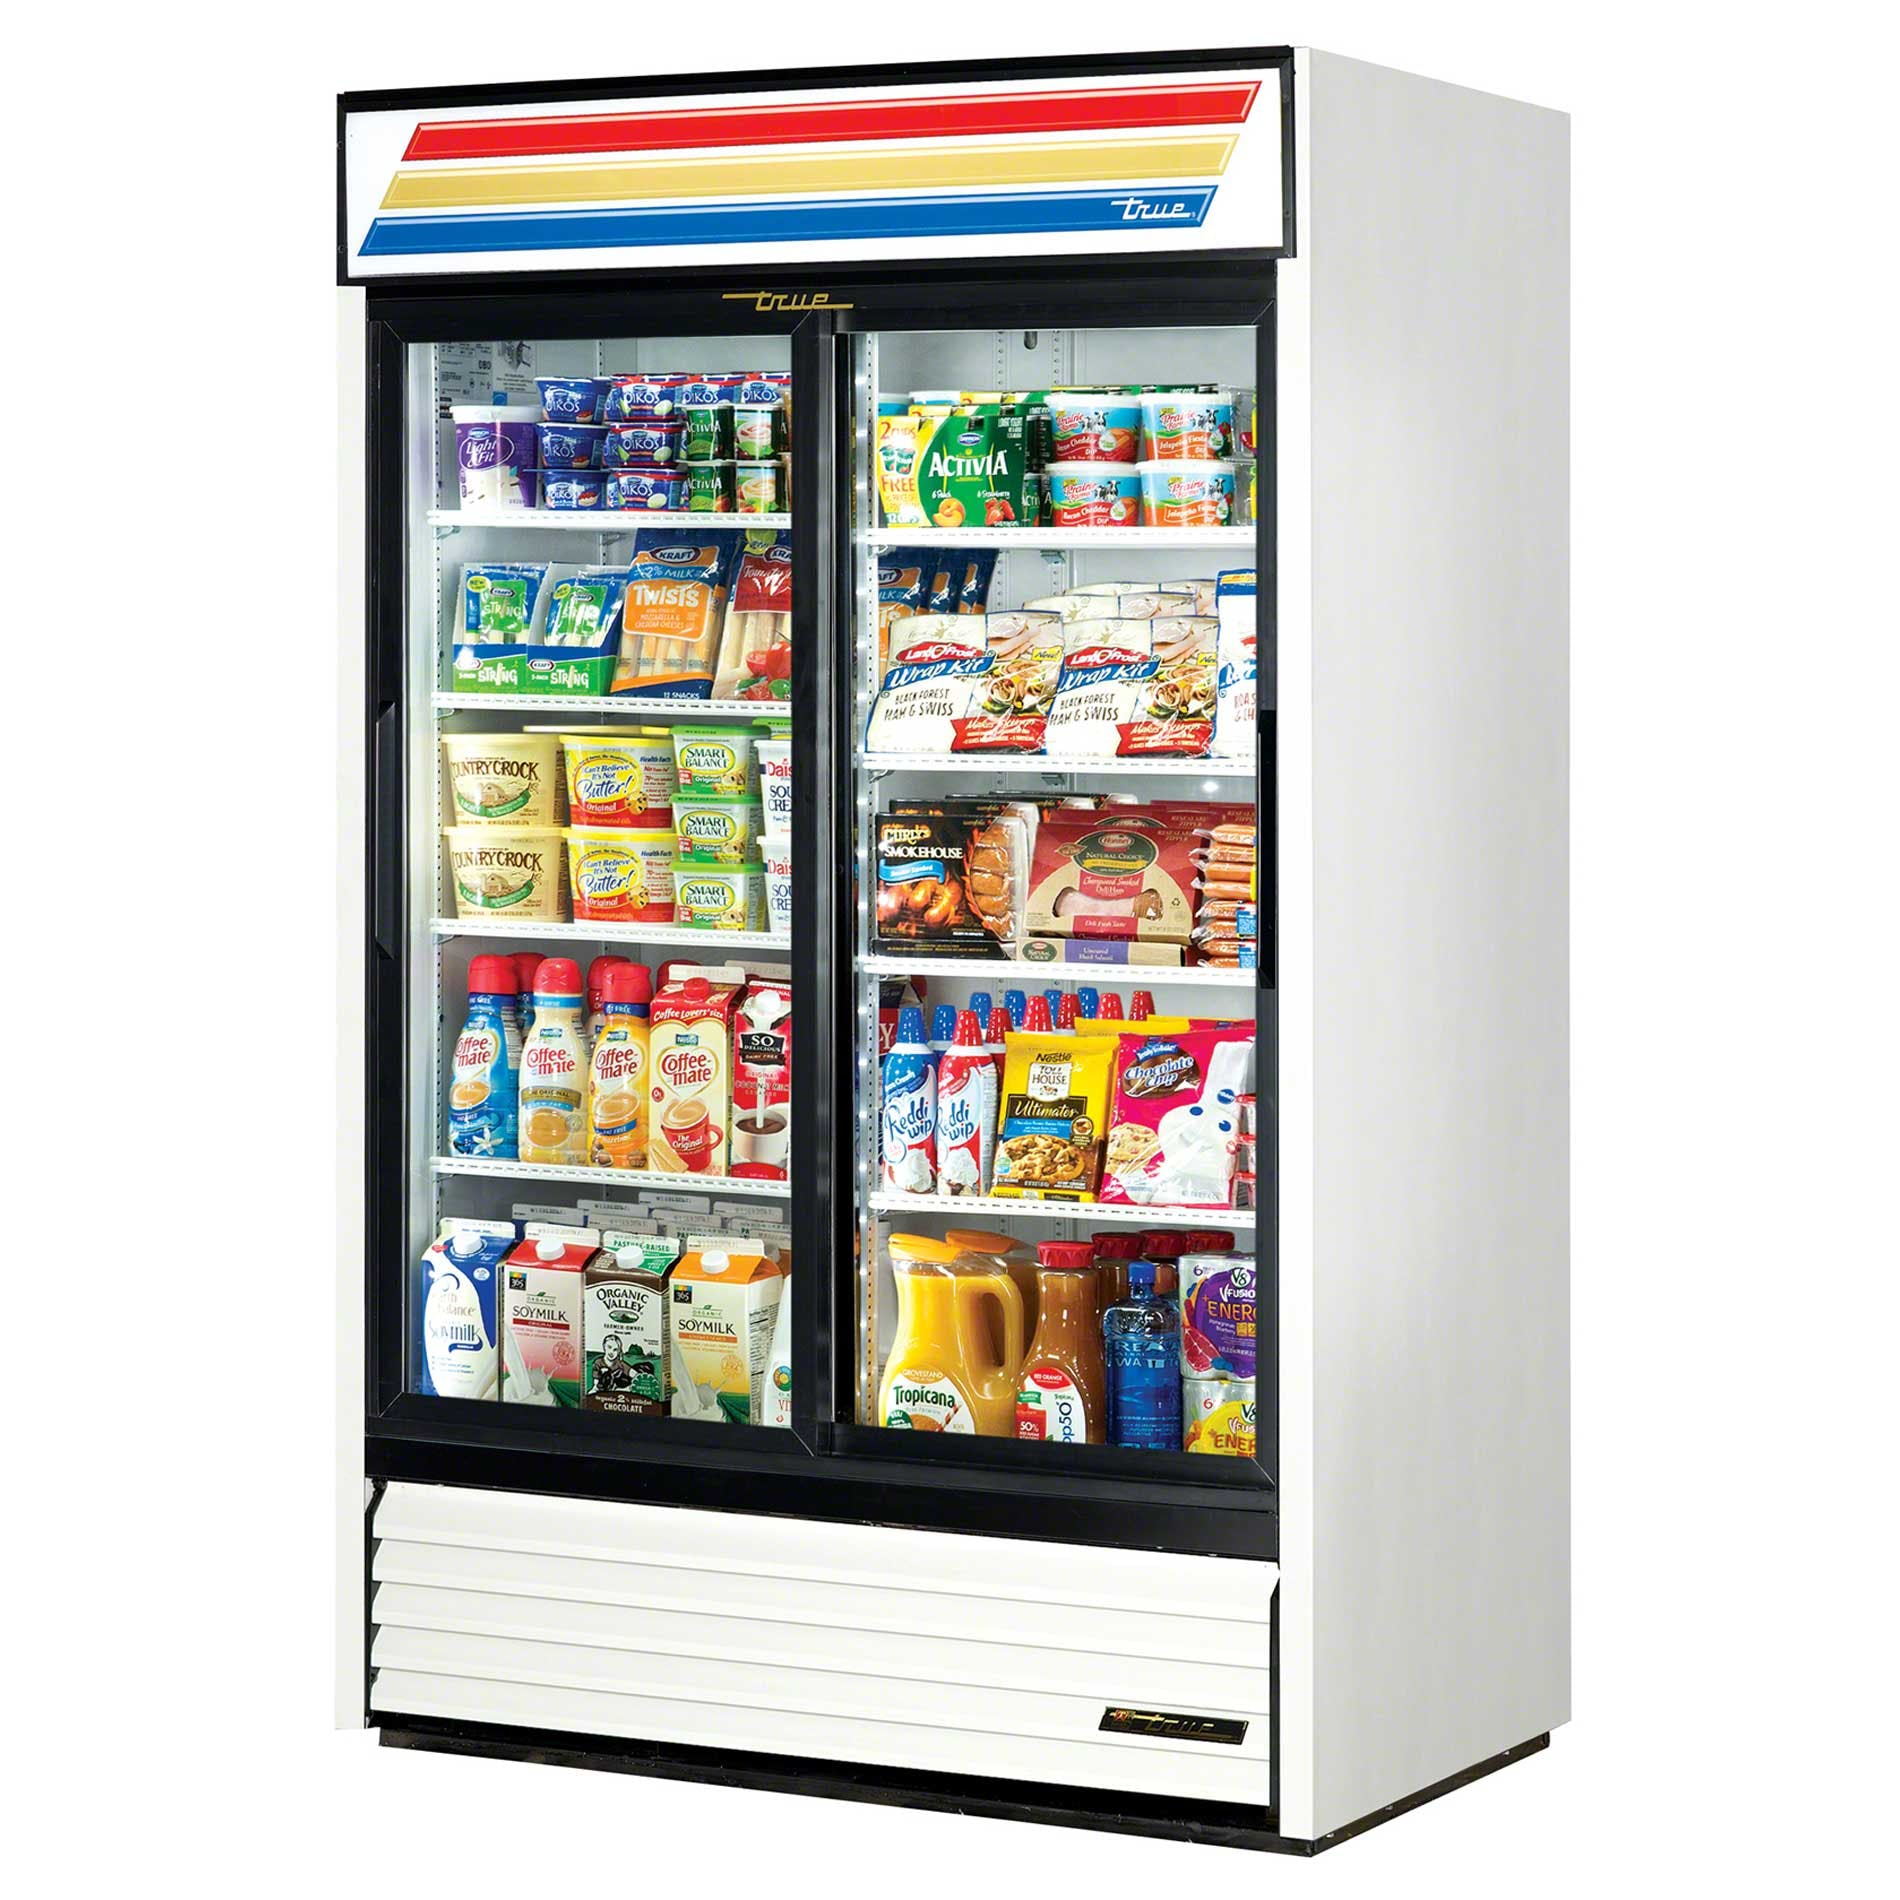 "True - GDM-45-LD 51"" Slide Glass Door Merchandiser Refrigerator LED Commercial refrigerator sold by Food Service Warehouse"